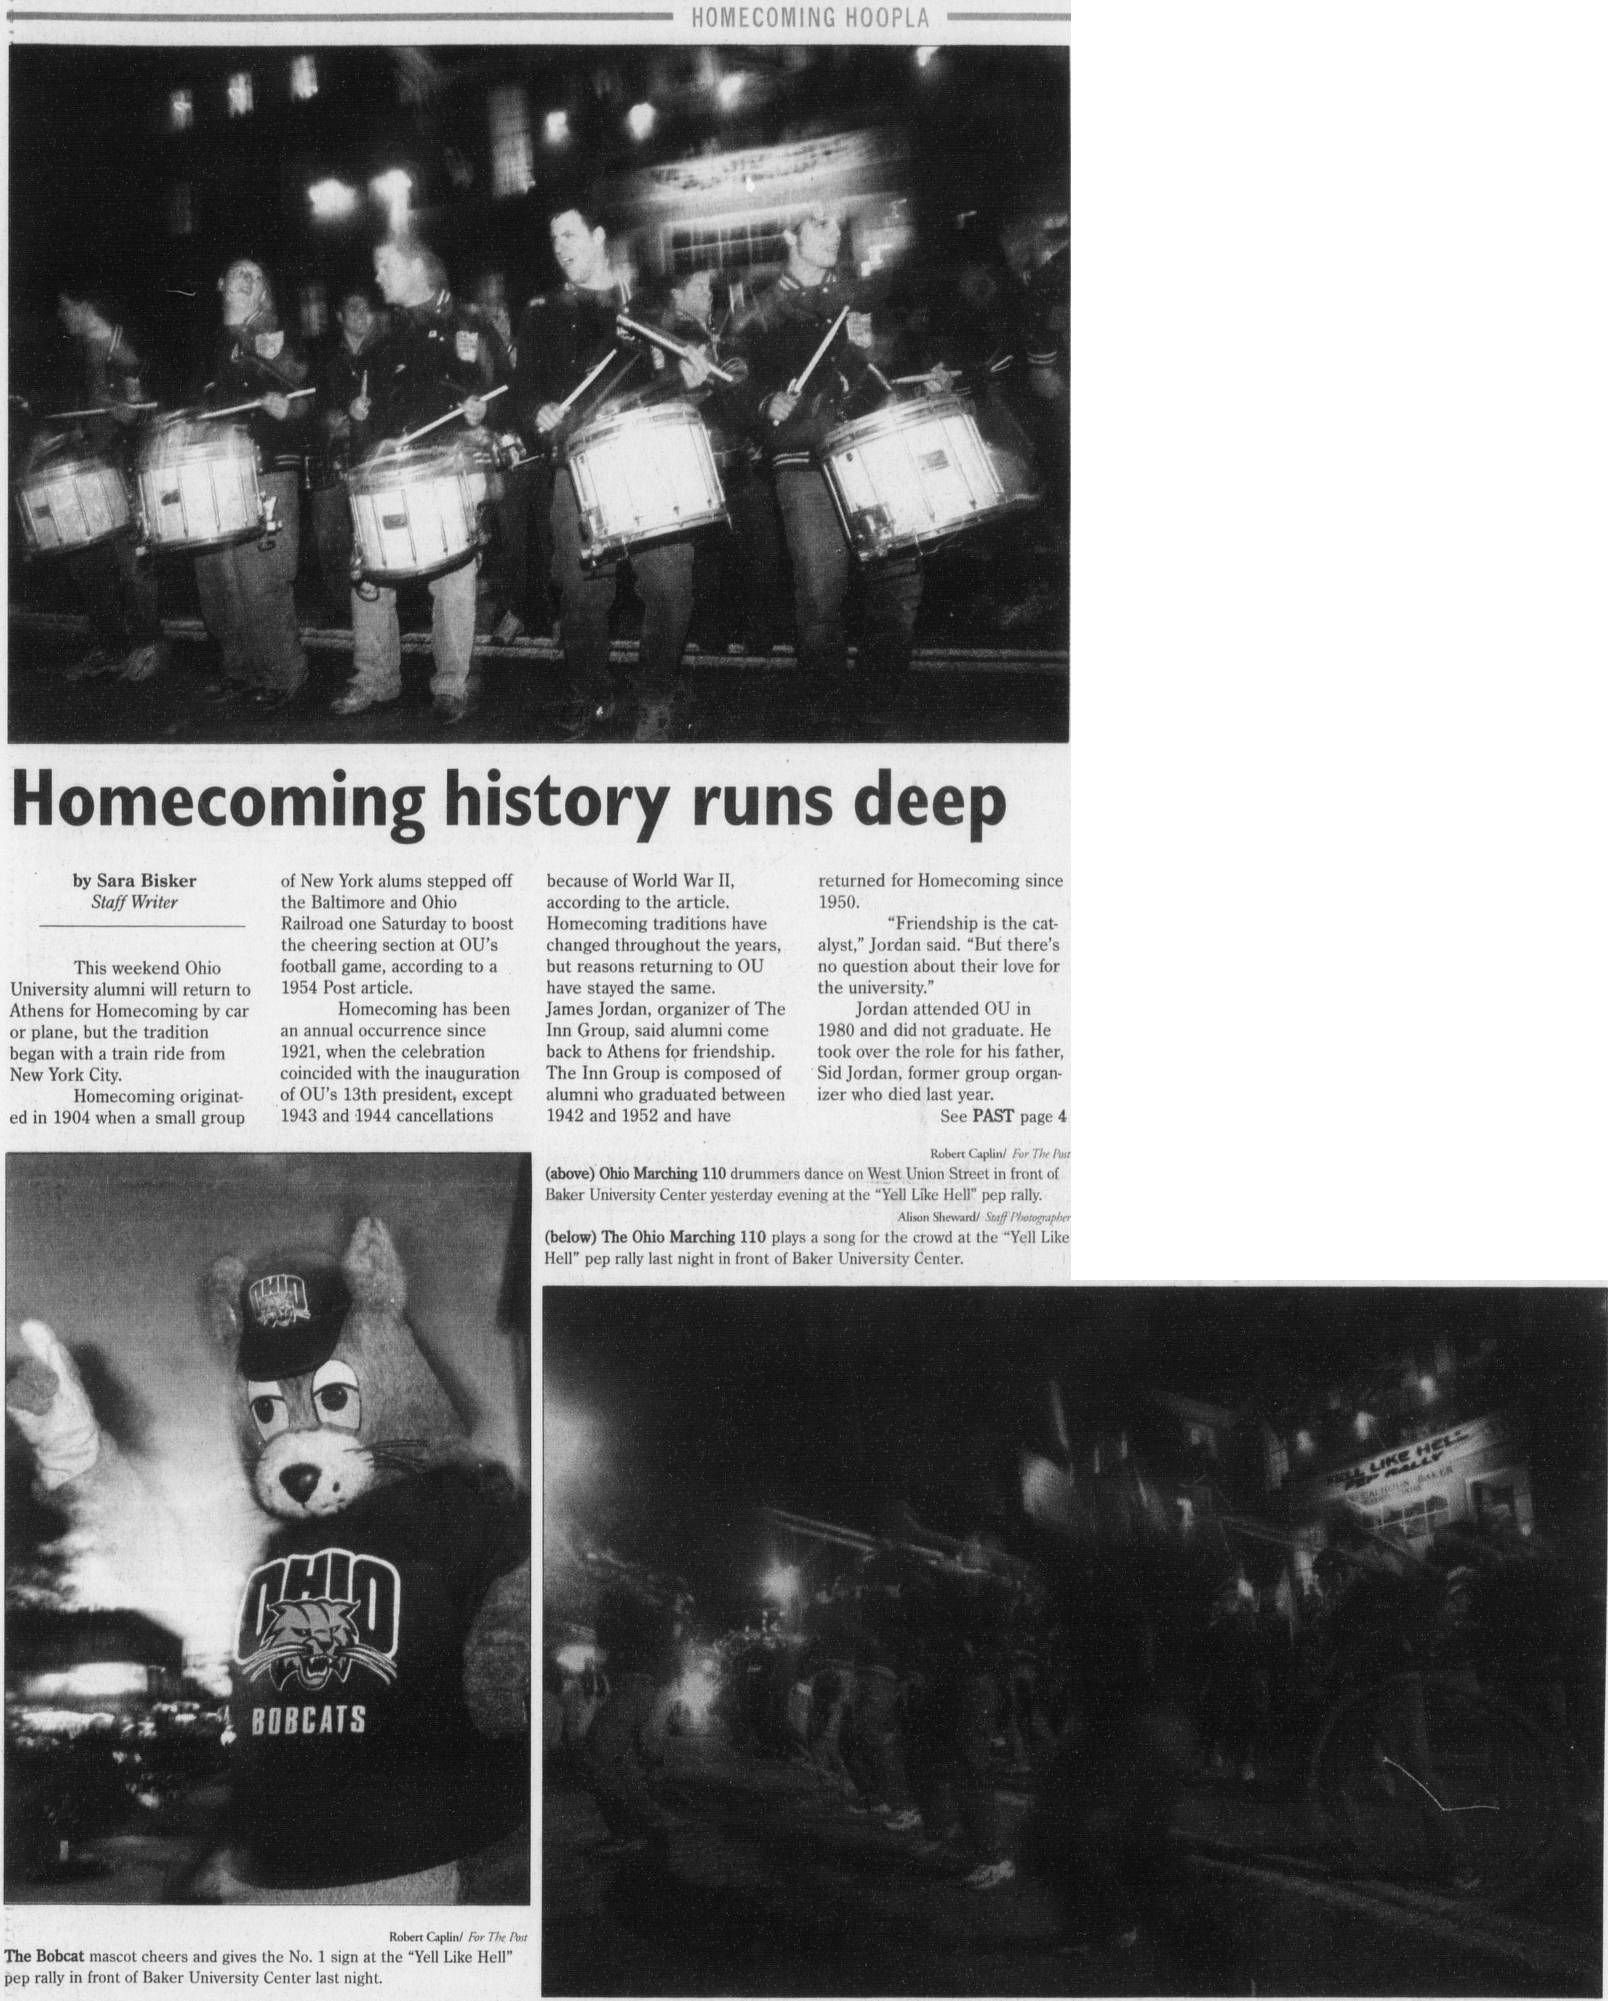 """Post (Athens, Ohio) October 26, 2001 Page 1: """"Homecoming"""